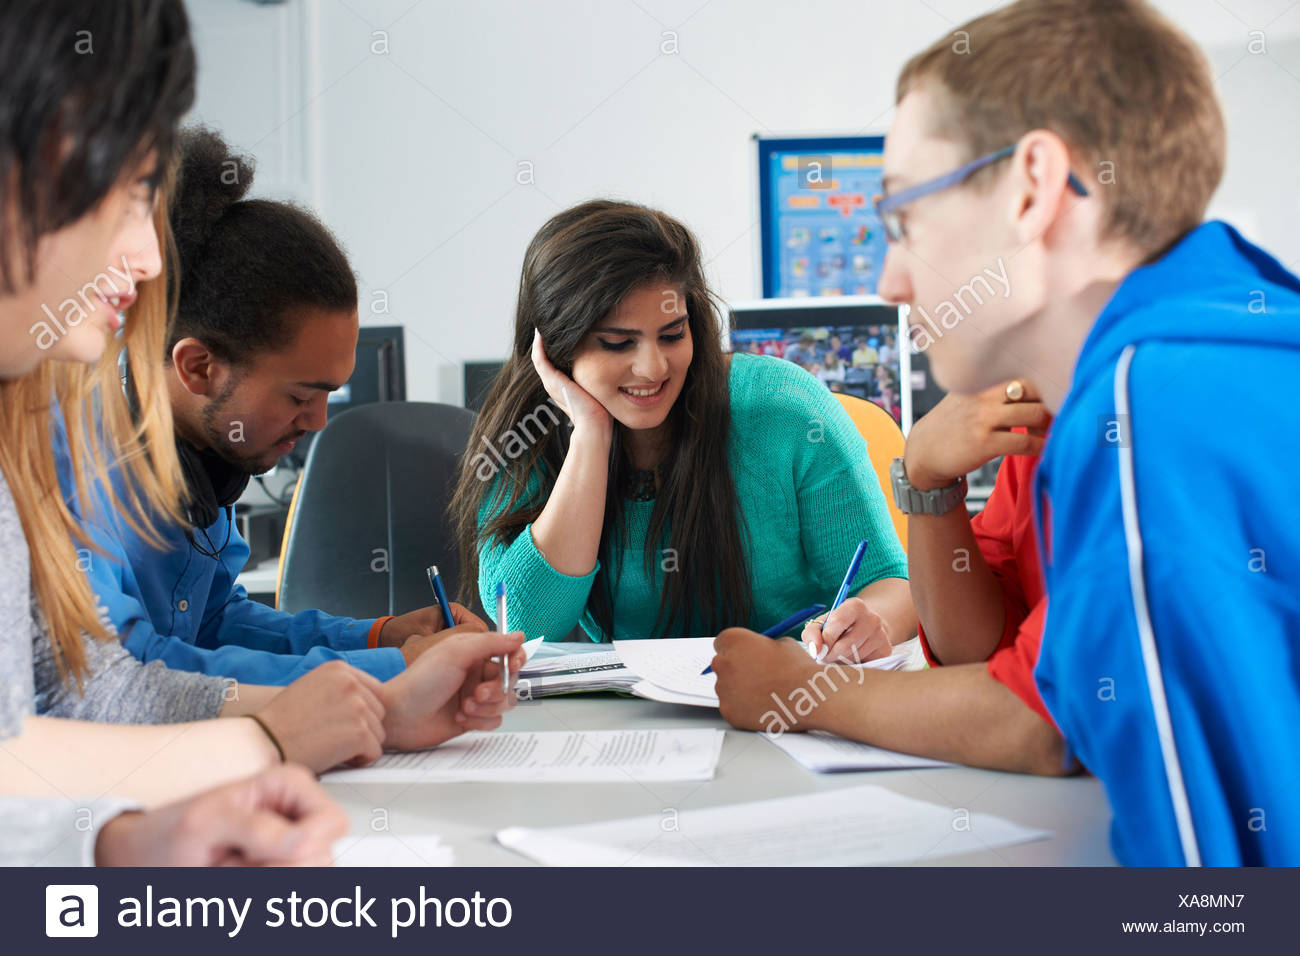 Group of college students studying together - Stock Image